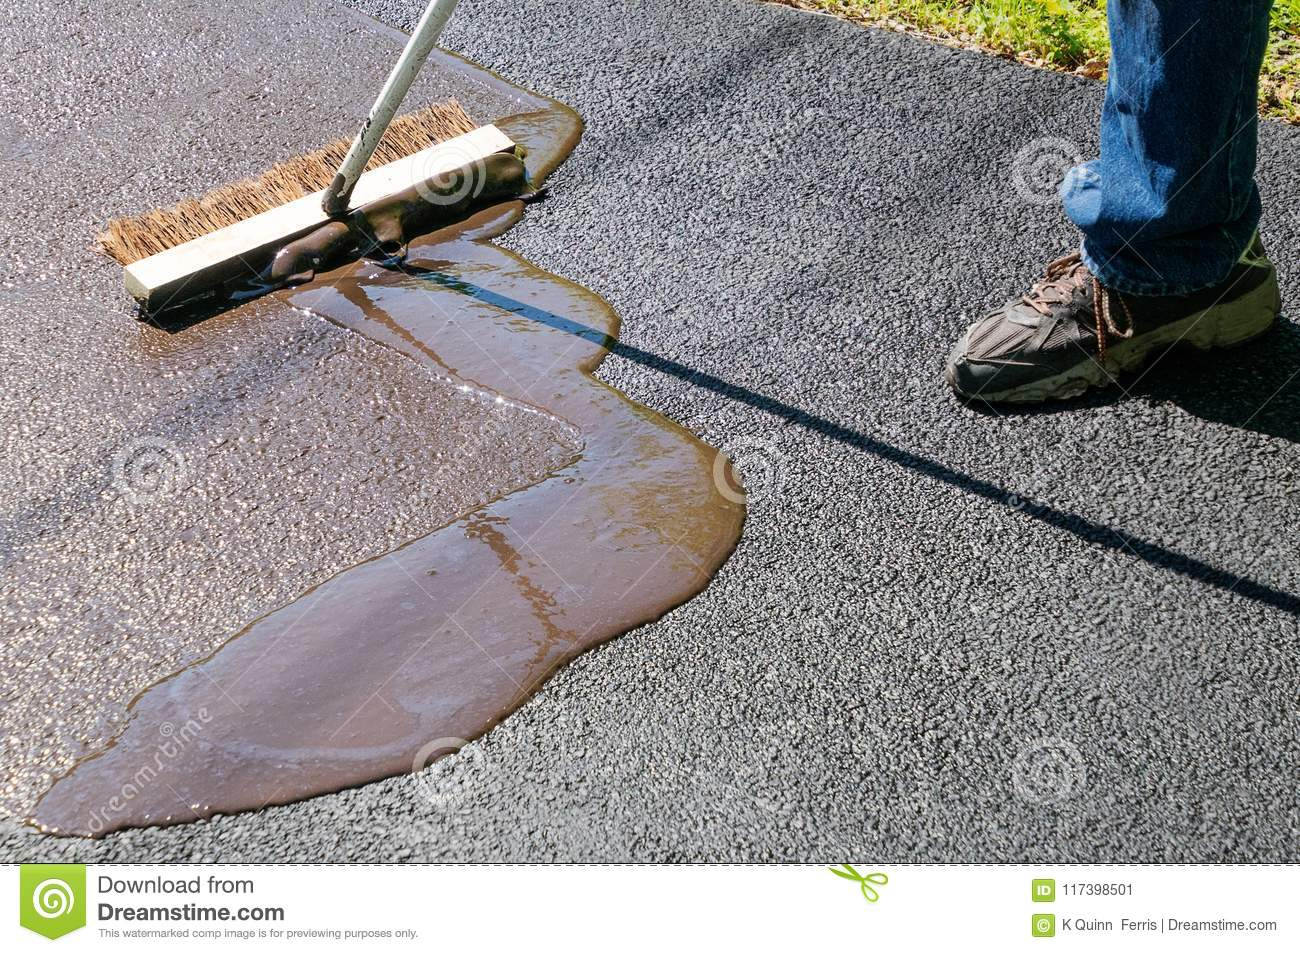 Driveway maintenance spreading sealant stock image image of work download driveway maintenance spreading sealant stock image image of work home 117398501 solutioingenieria Gallery